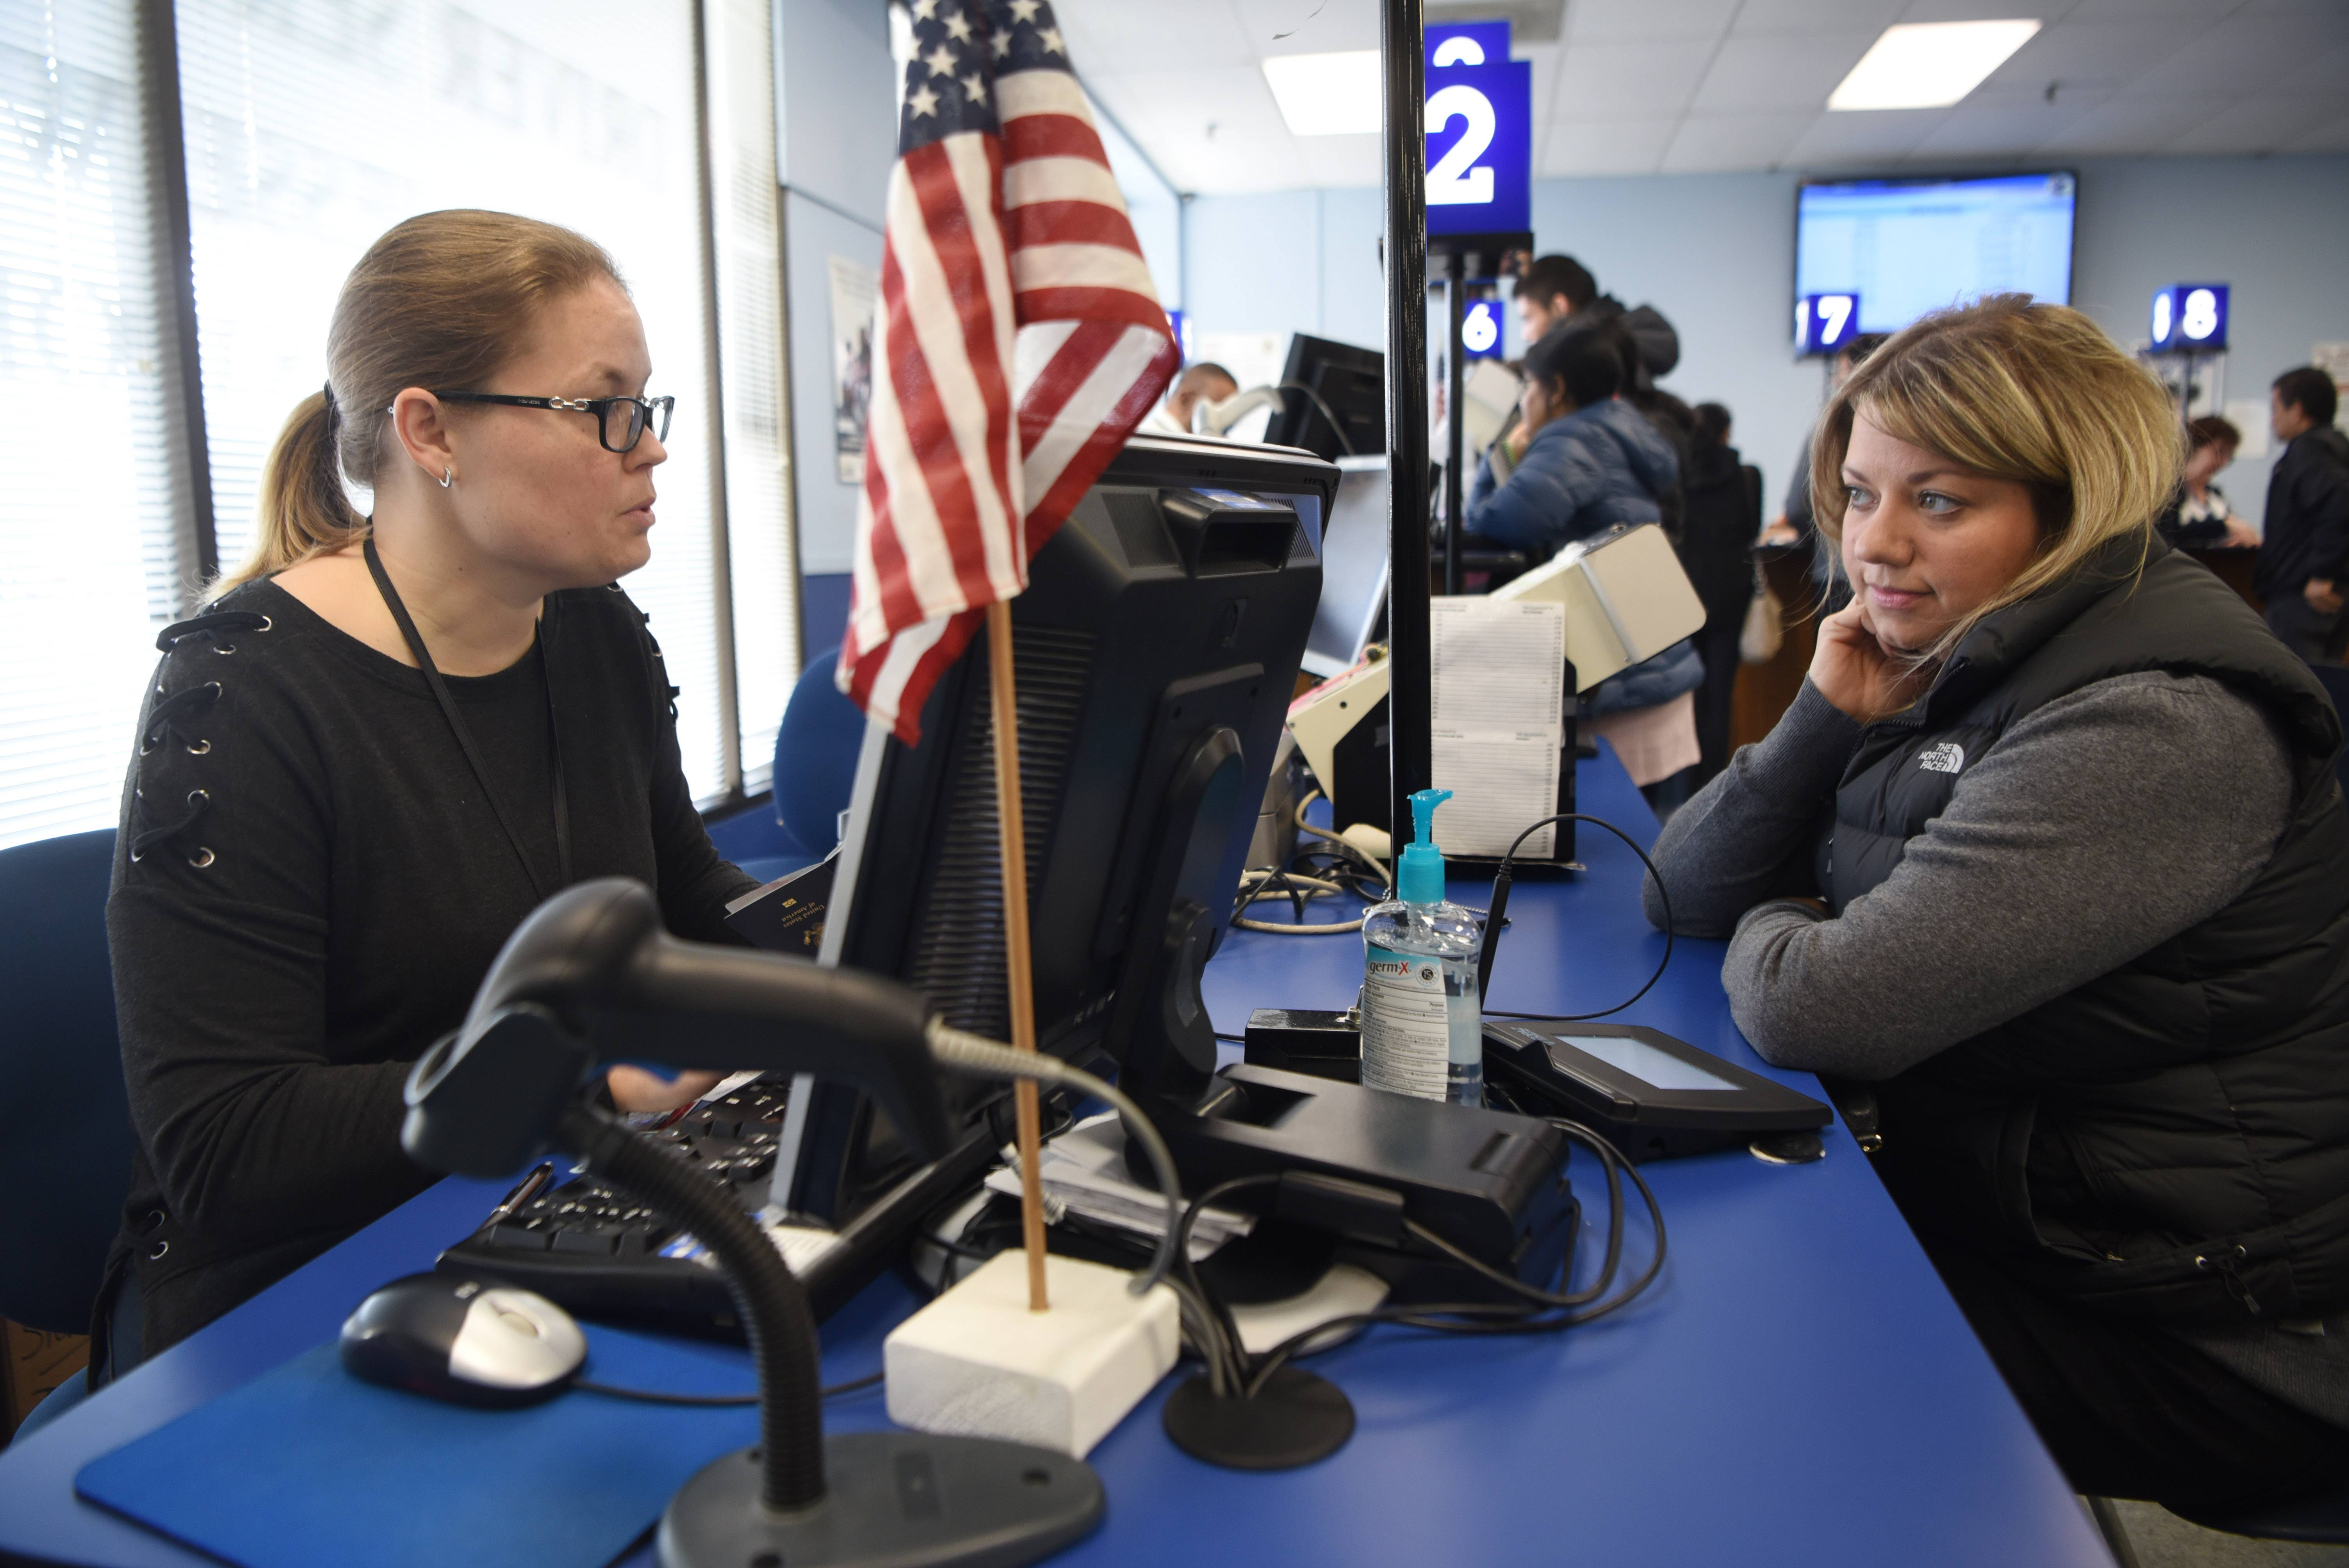 Kelly Hallman, right, of Bloomingdale applies for her REAL ID with the assistance of Urszula Kolodziej on Friday at the state driver's license facility in Schaumburg.